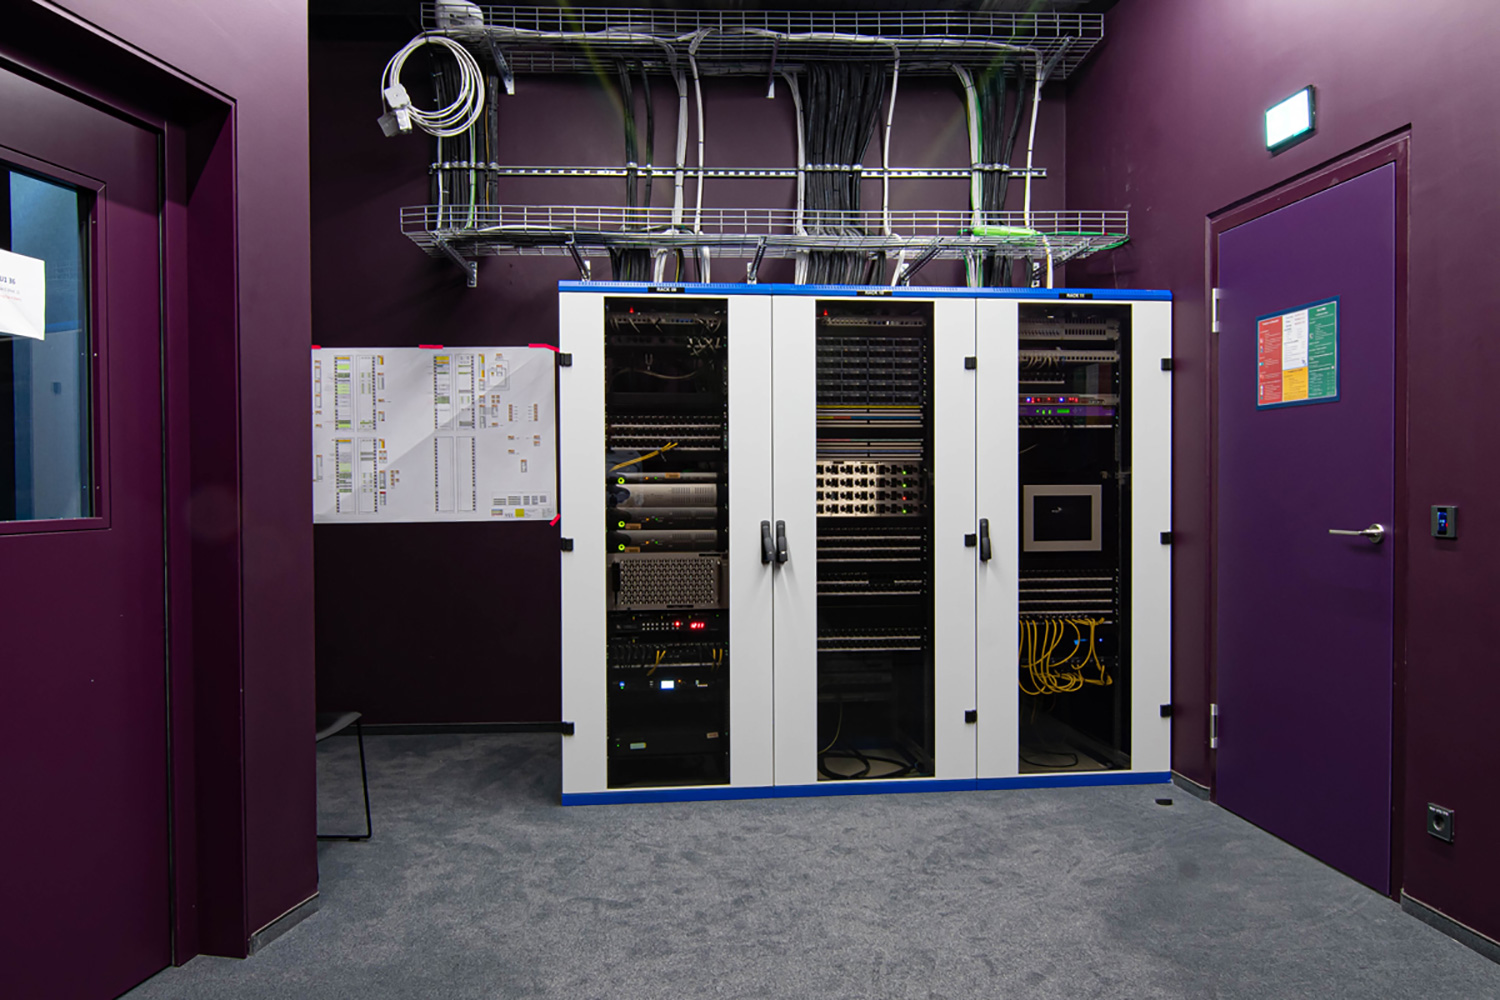 The University of Music and Performing Arts of Vienna new Future Art Lab designed by WSDG. System integration, control machine room.